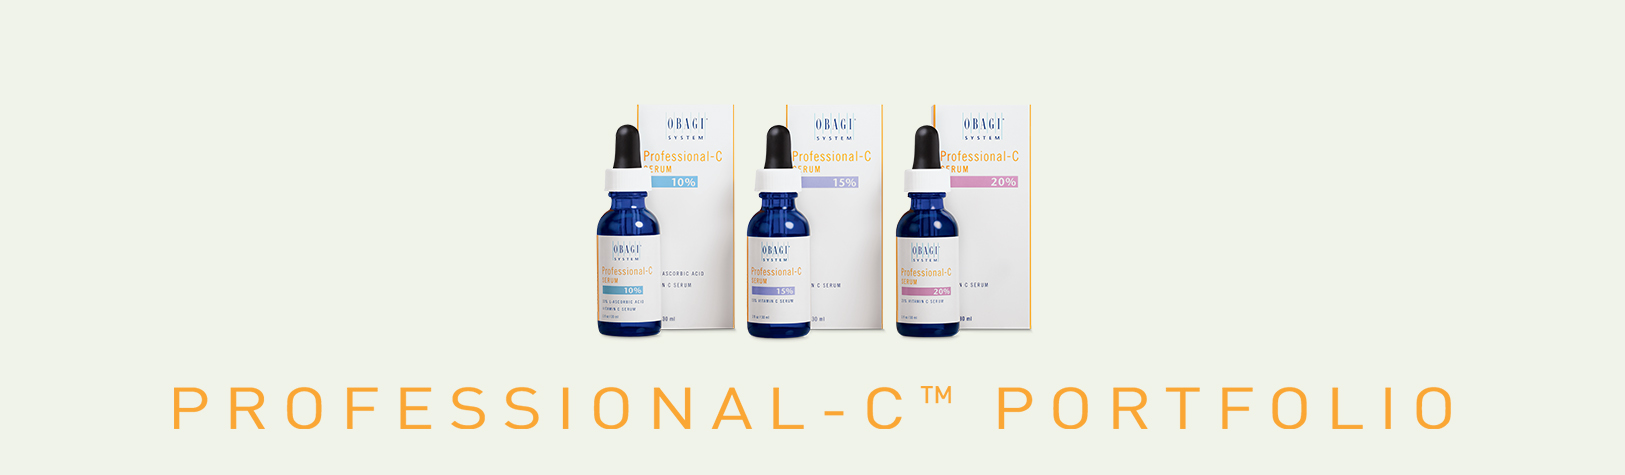 Professional C Serums